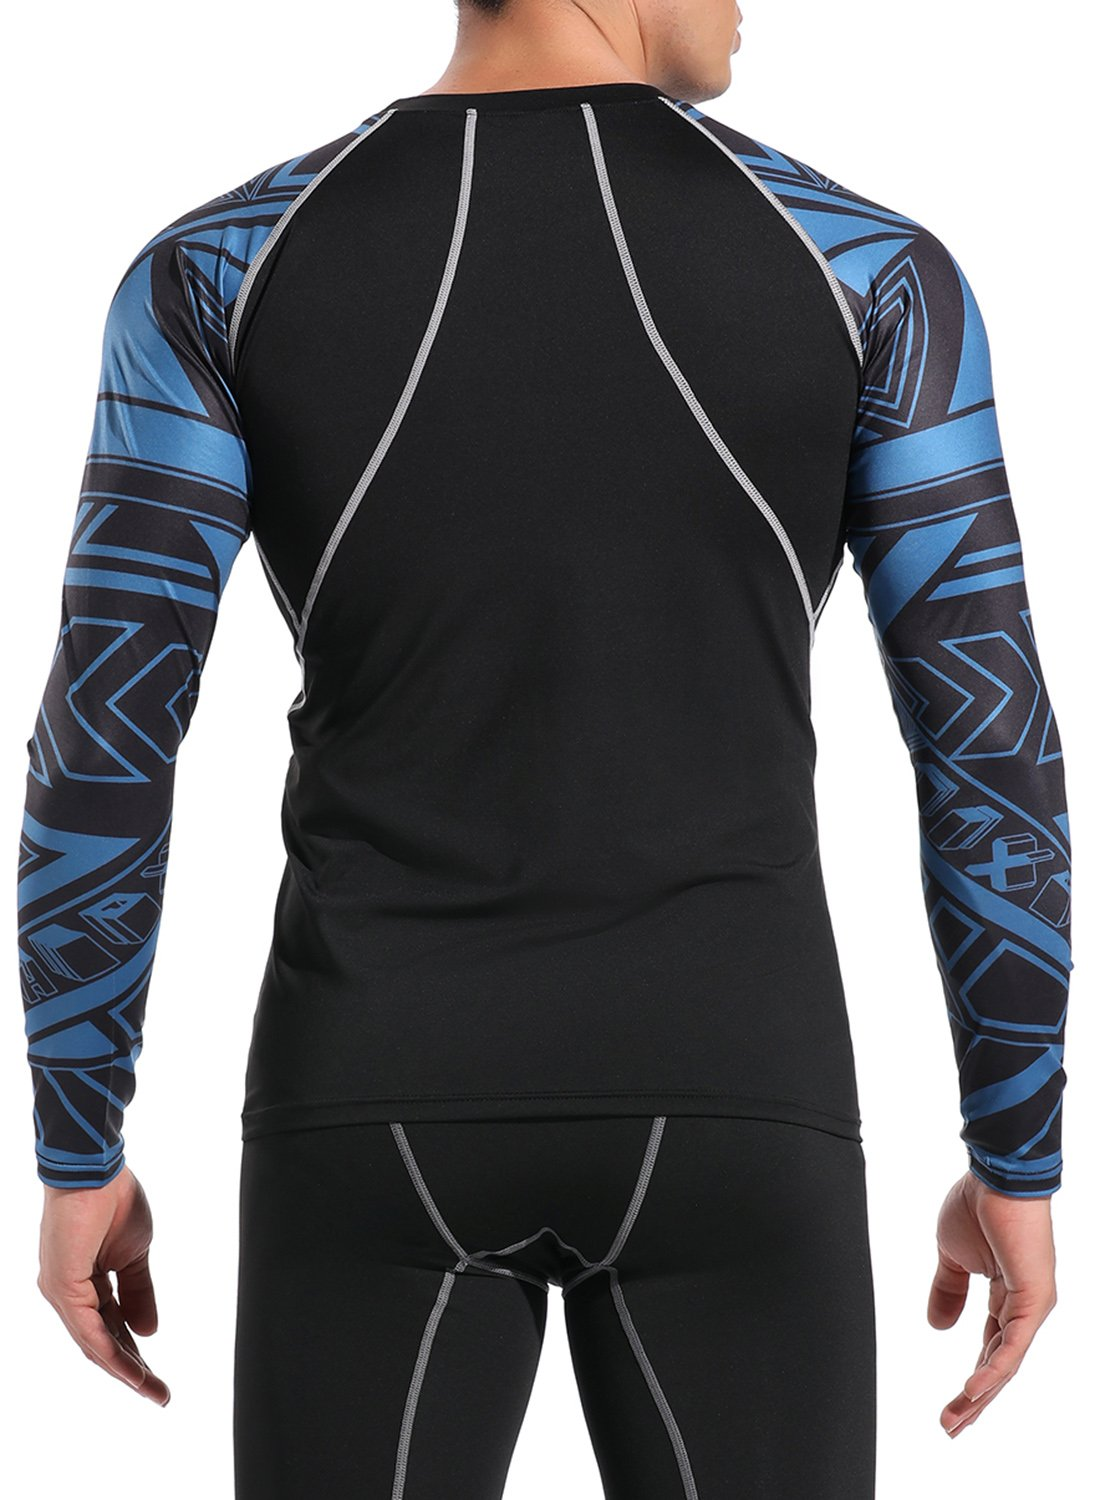 Men's Long Sleeve T-Shirt Dry Print Compression Top